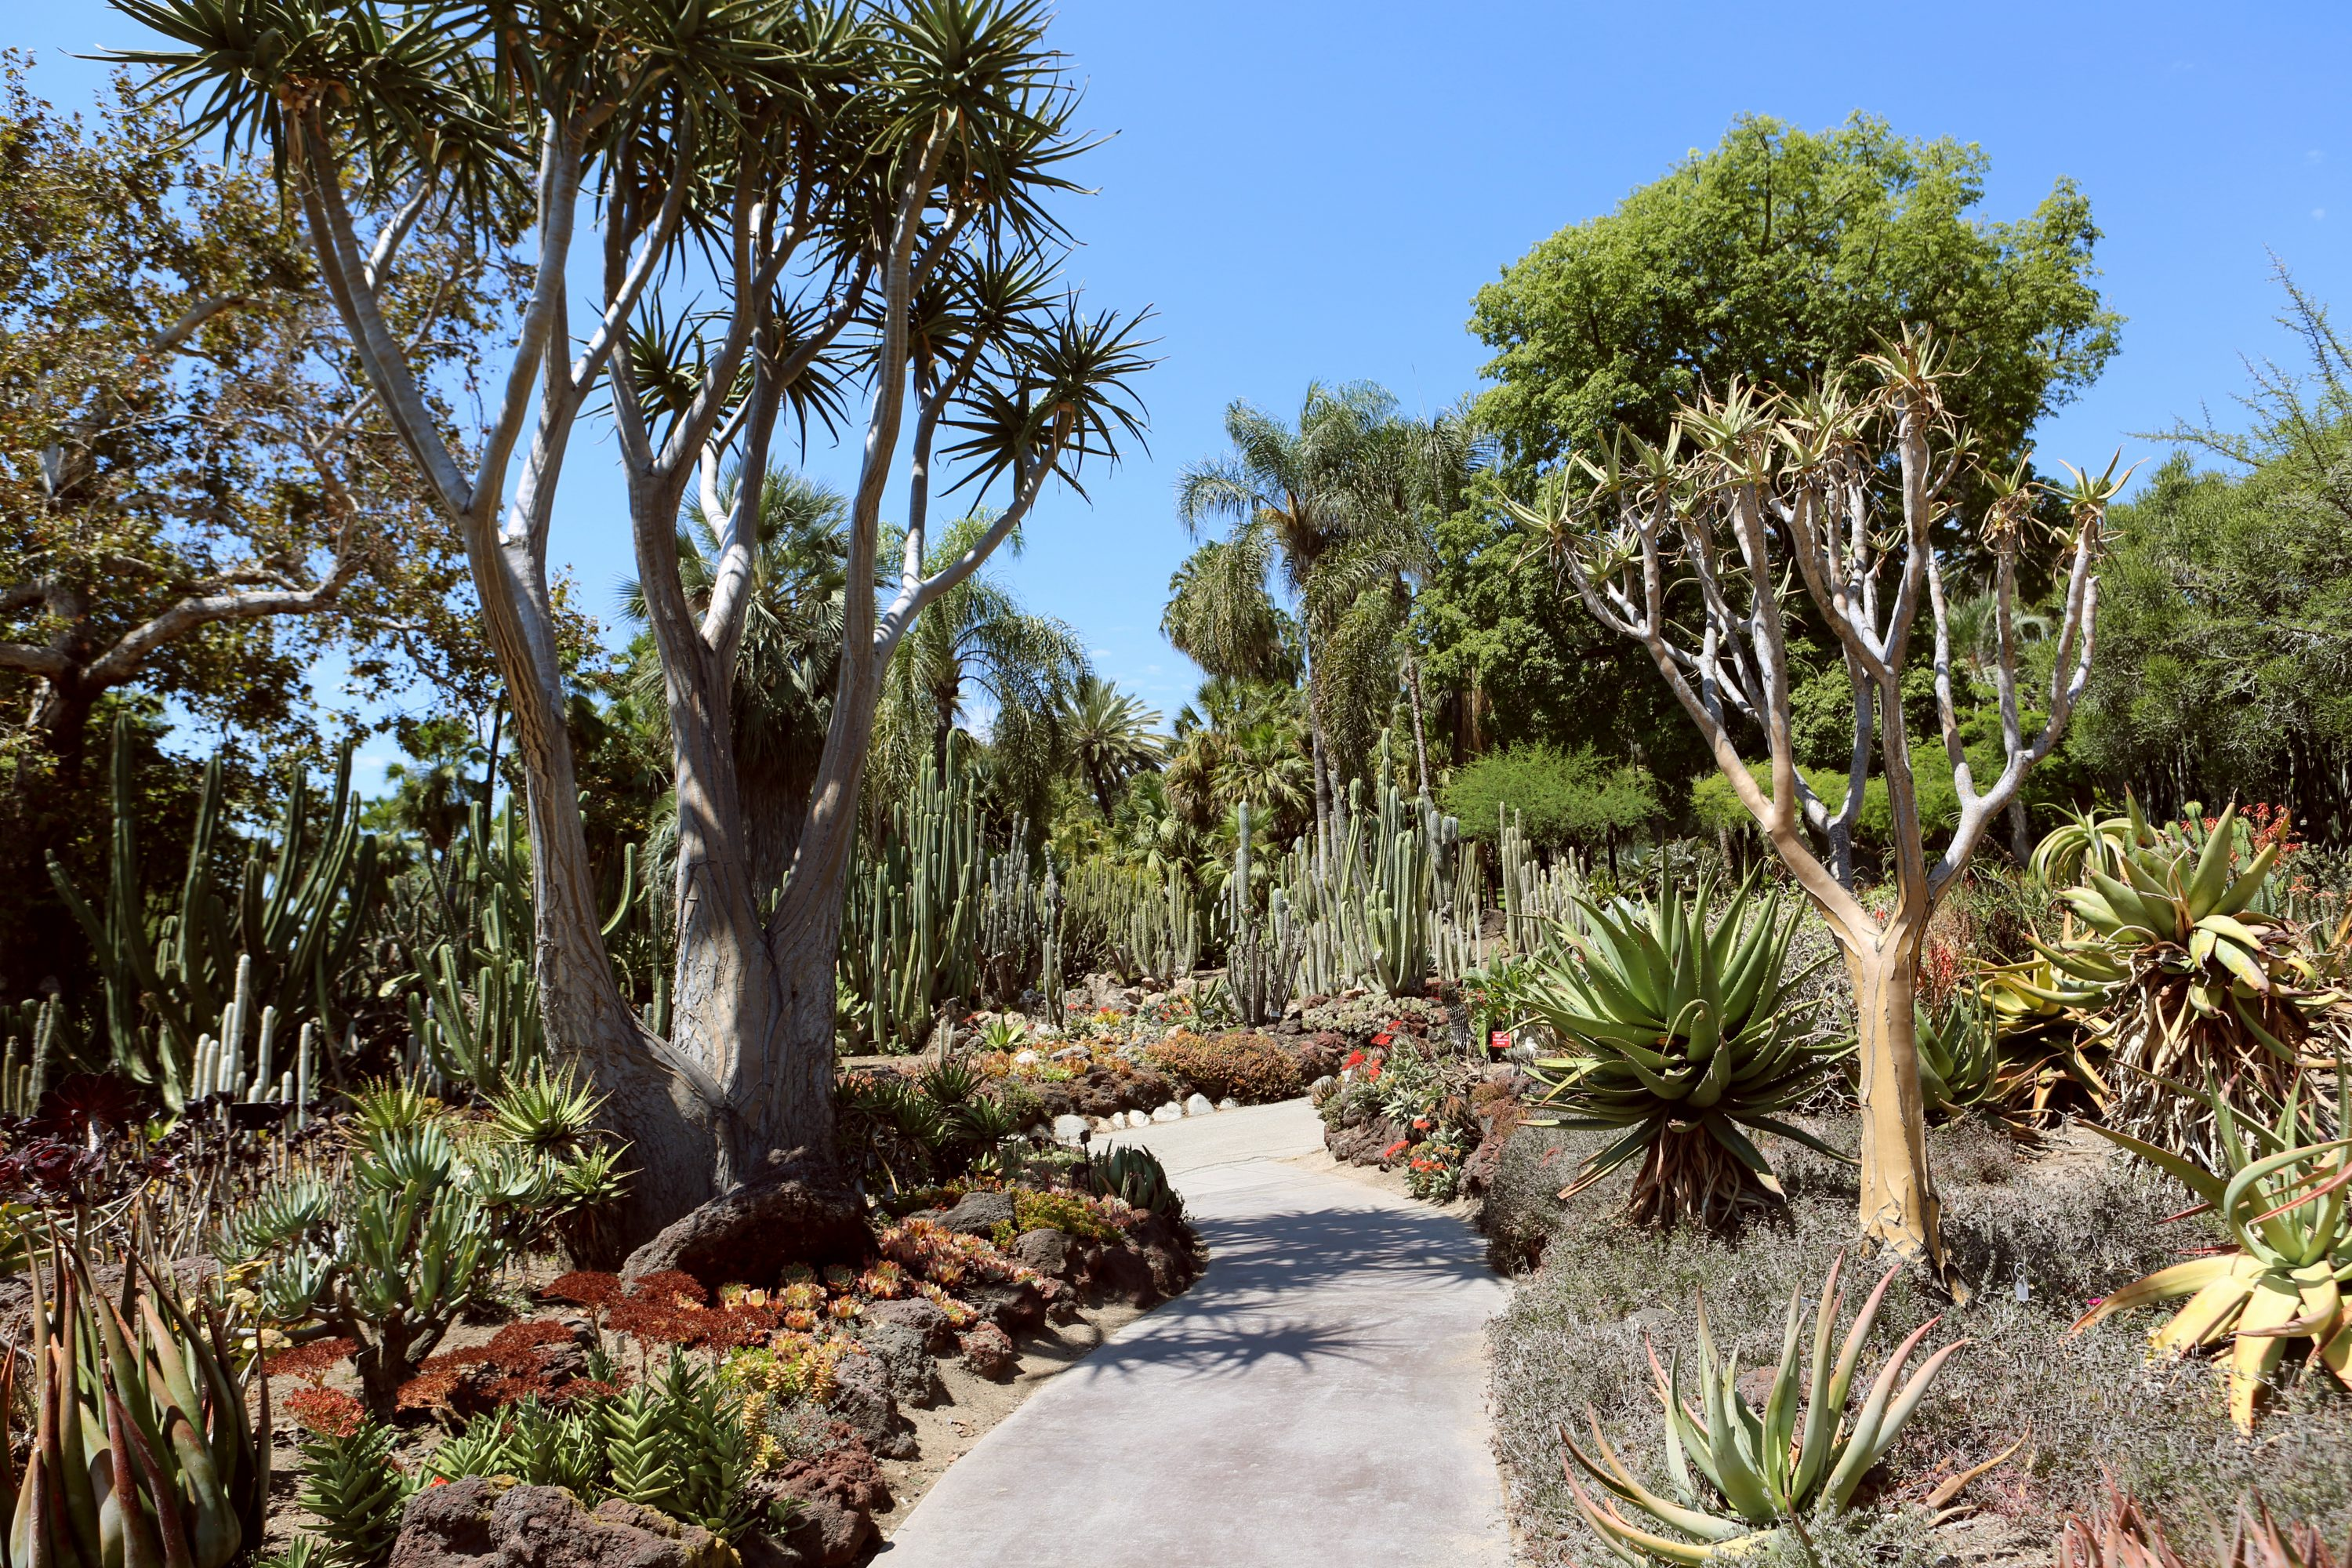 botanical gardens research paper on california University of california botanical gardens at berkeley  it's a hotspot of research  on plant ecological genetics, but is also open to the public year-round.